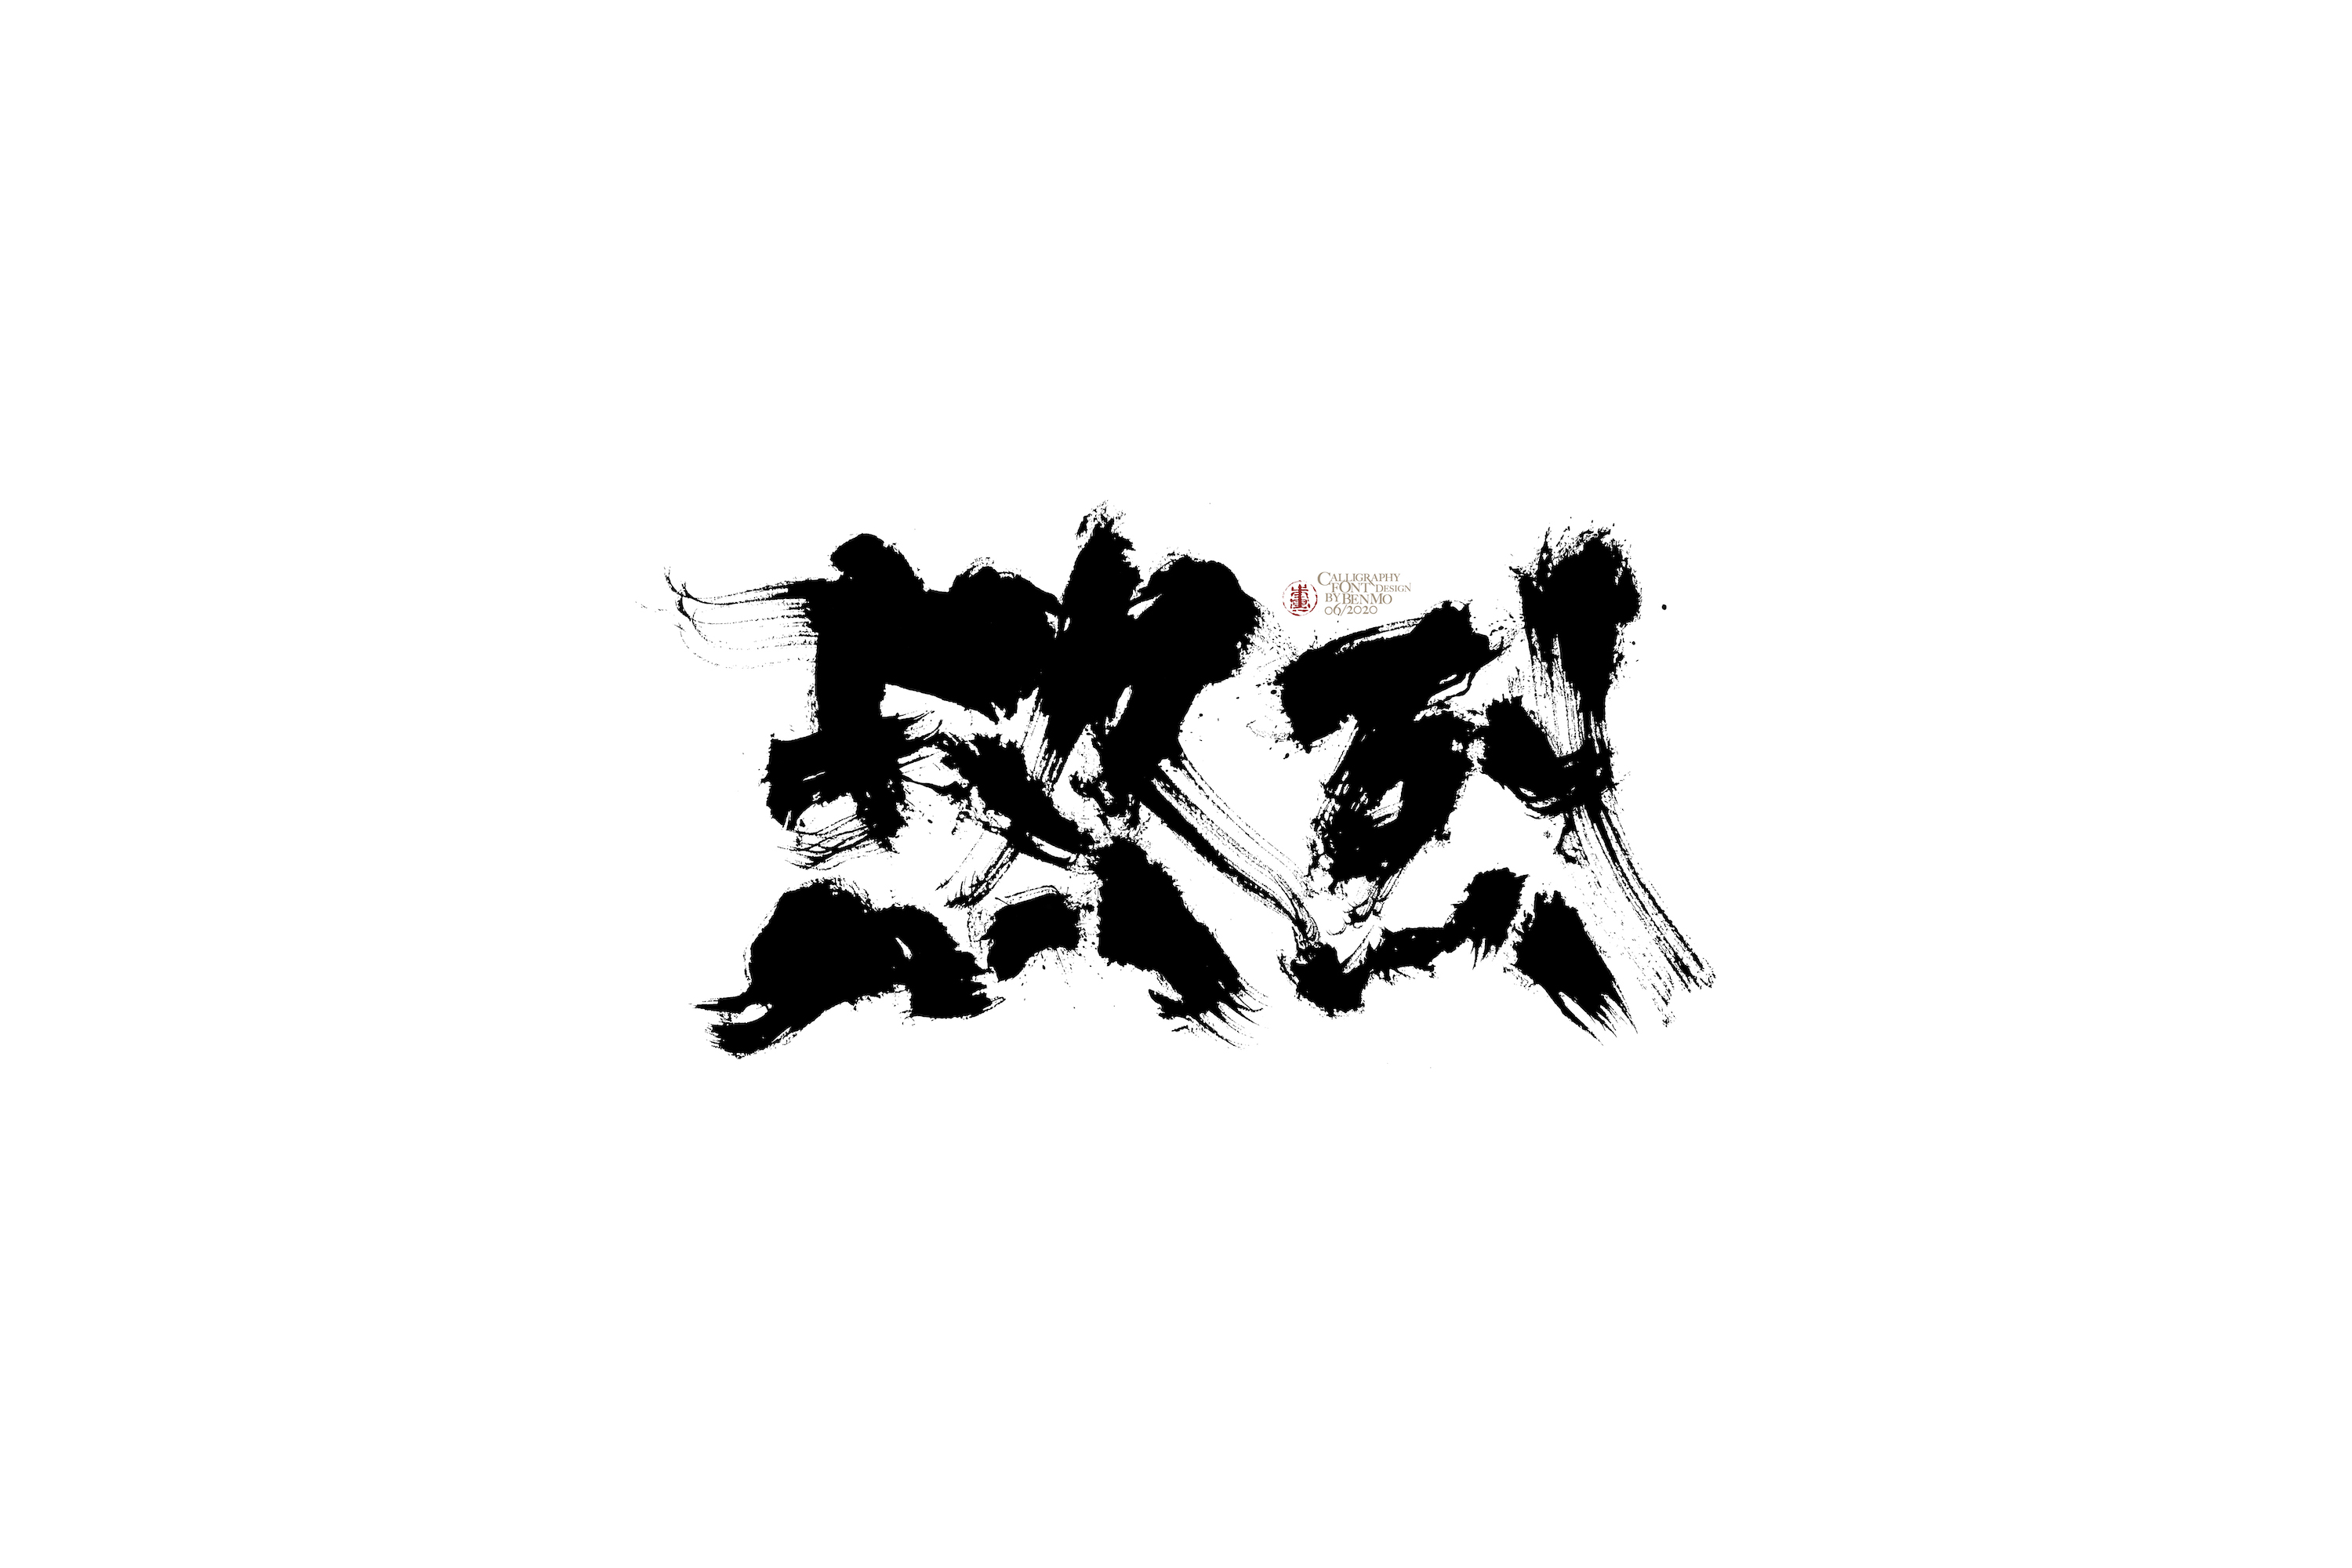 39P Calligraphy Evaluation of Chinese Characters in June